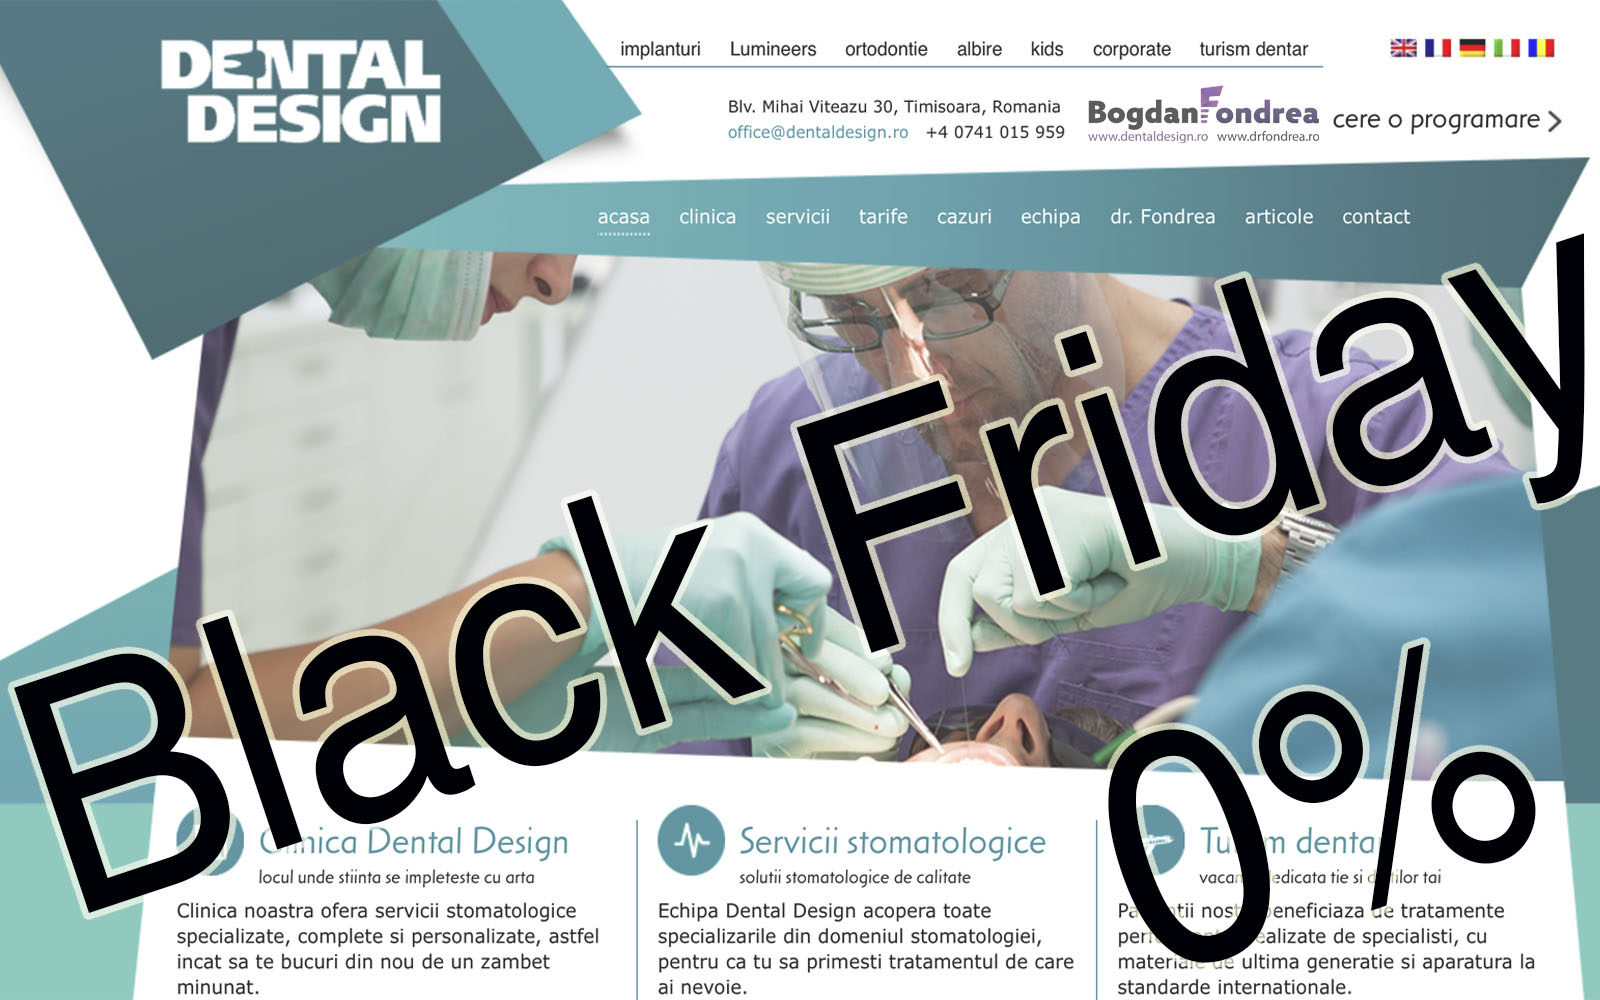 black friday dental design fondrea